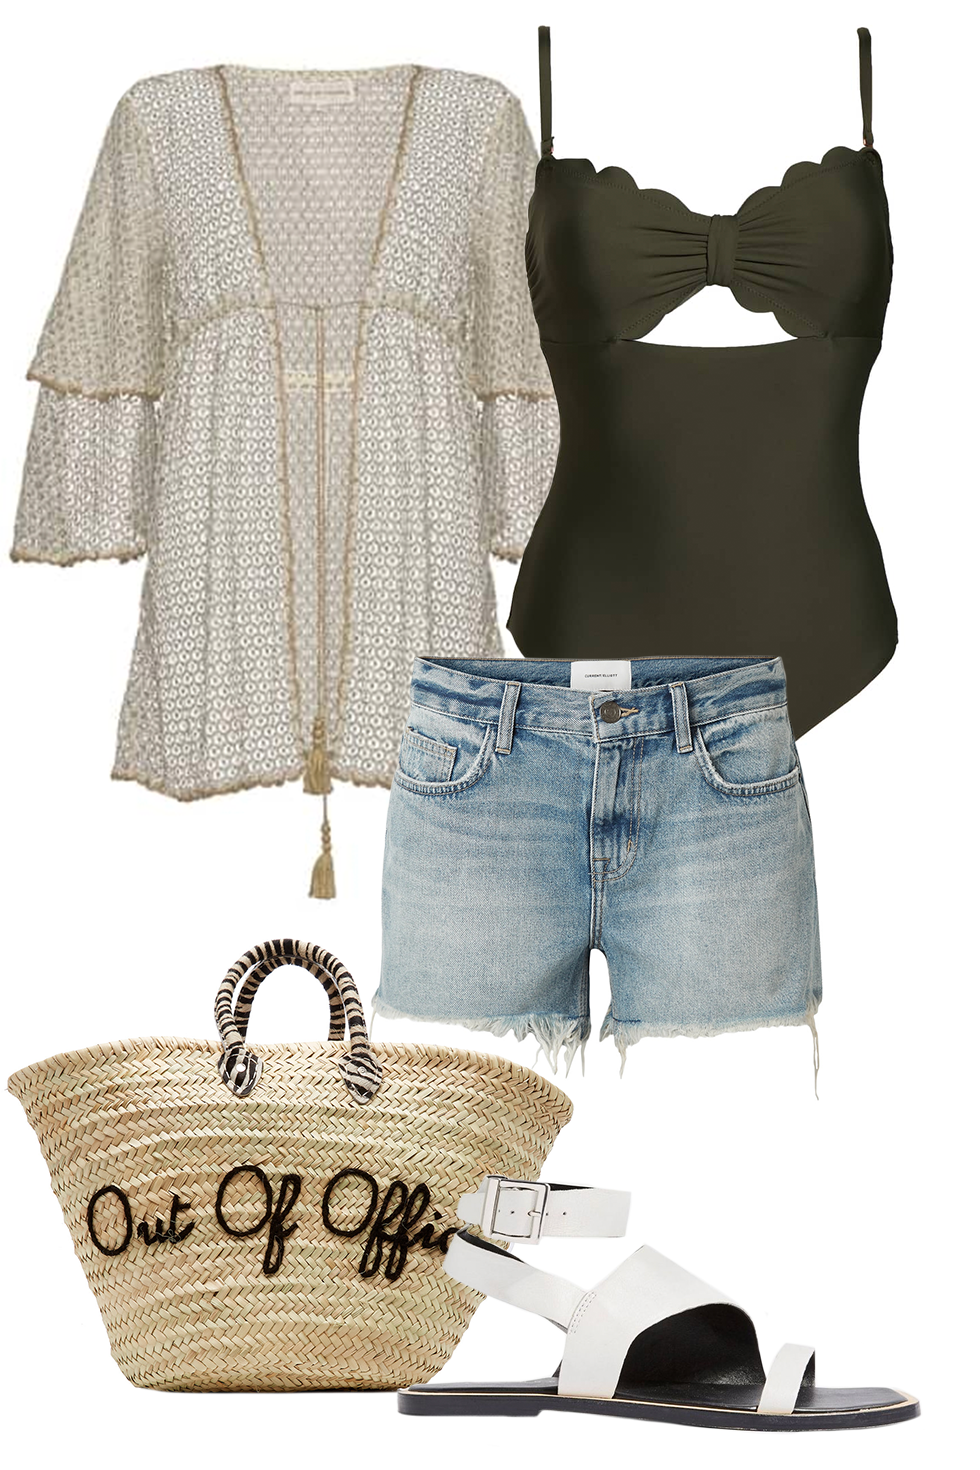 1782e675ceb Celebrity Beach Outfit Ideas - What to Wear to the Beach